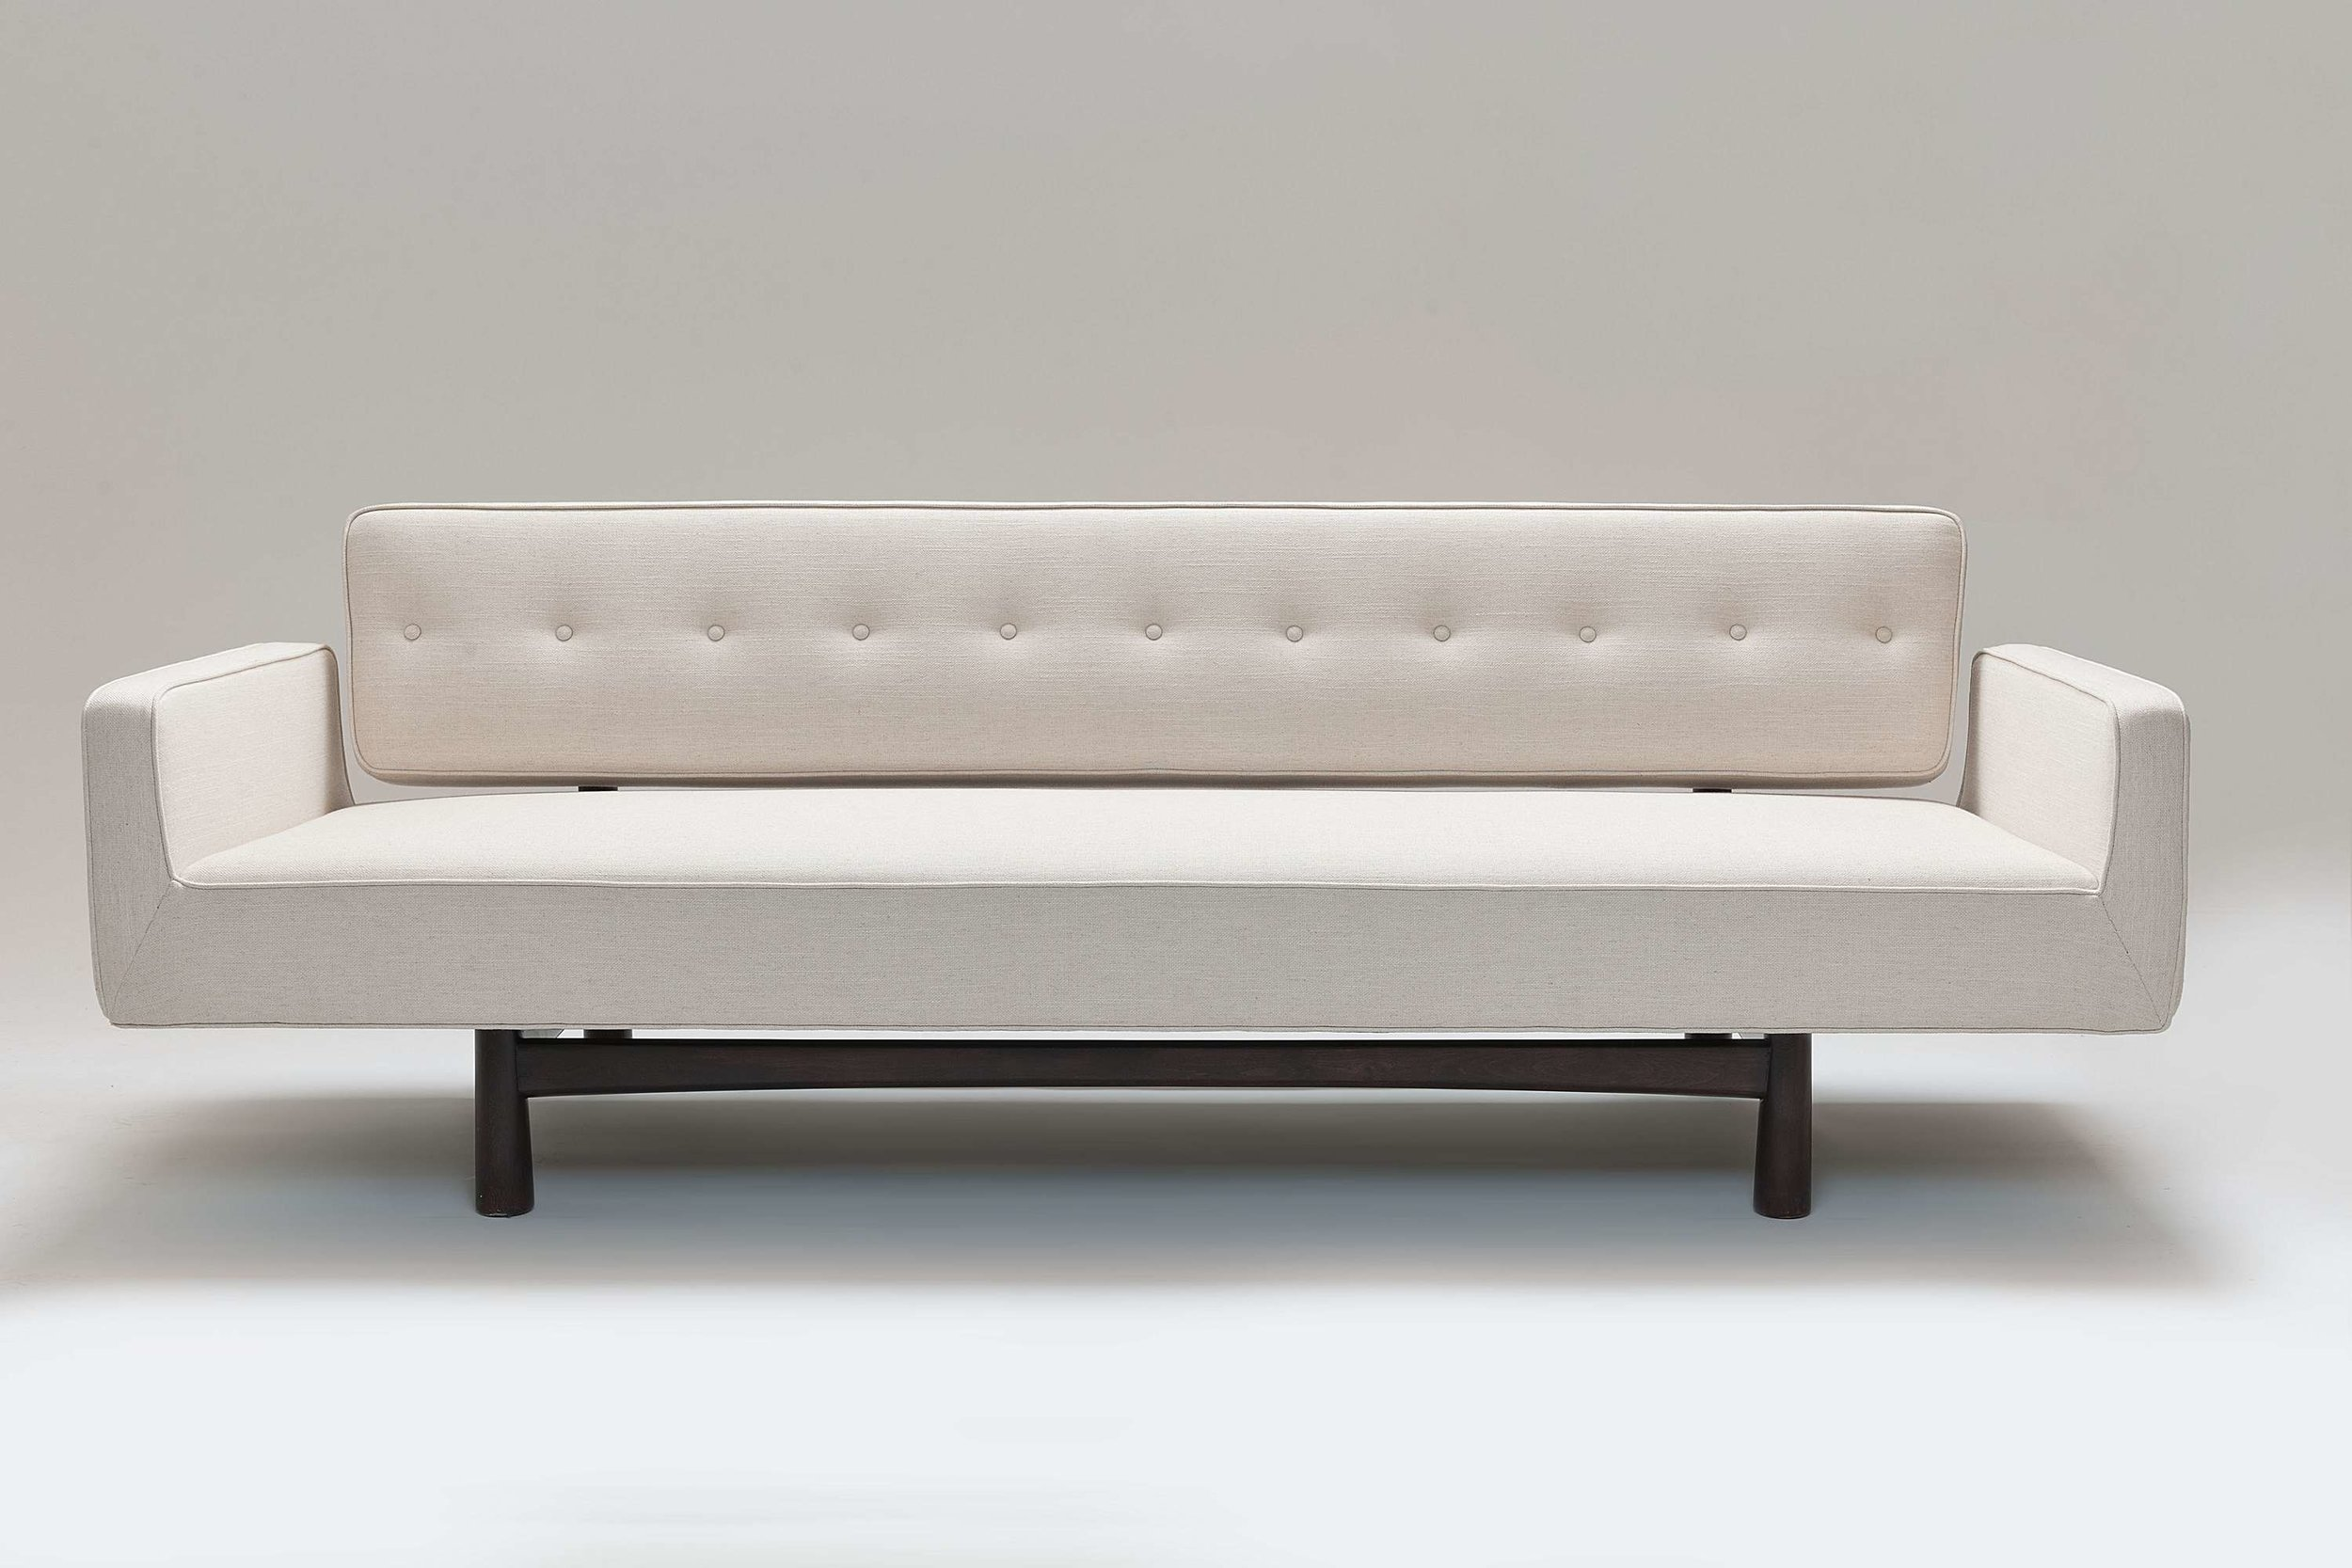 New York Sofa 5316 - Edward Wormley